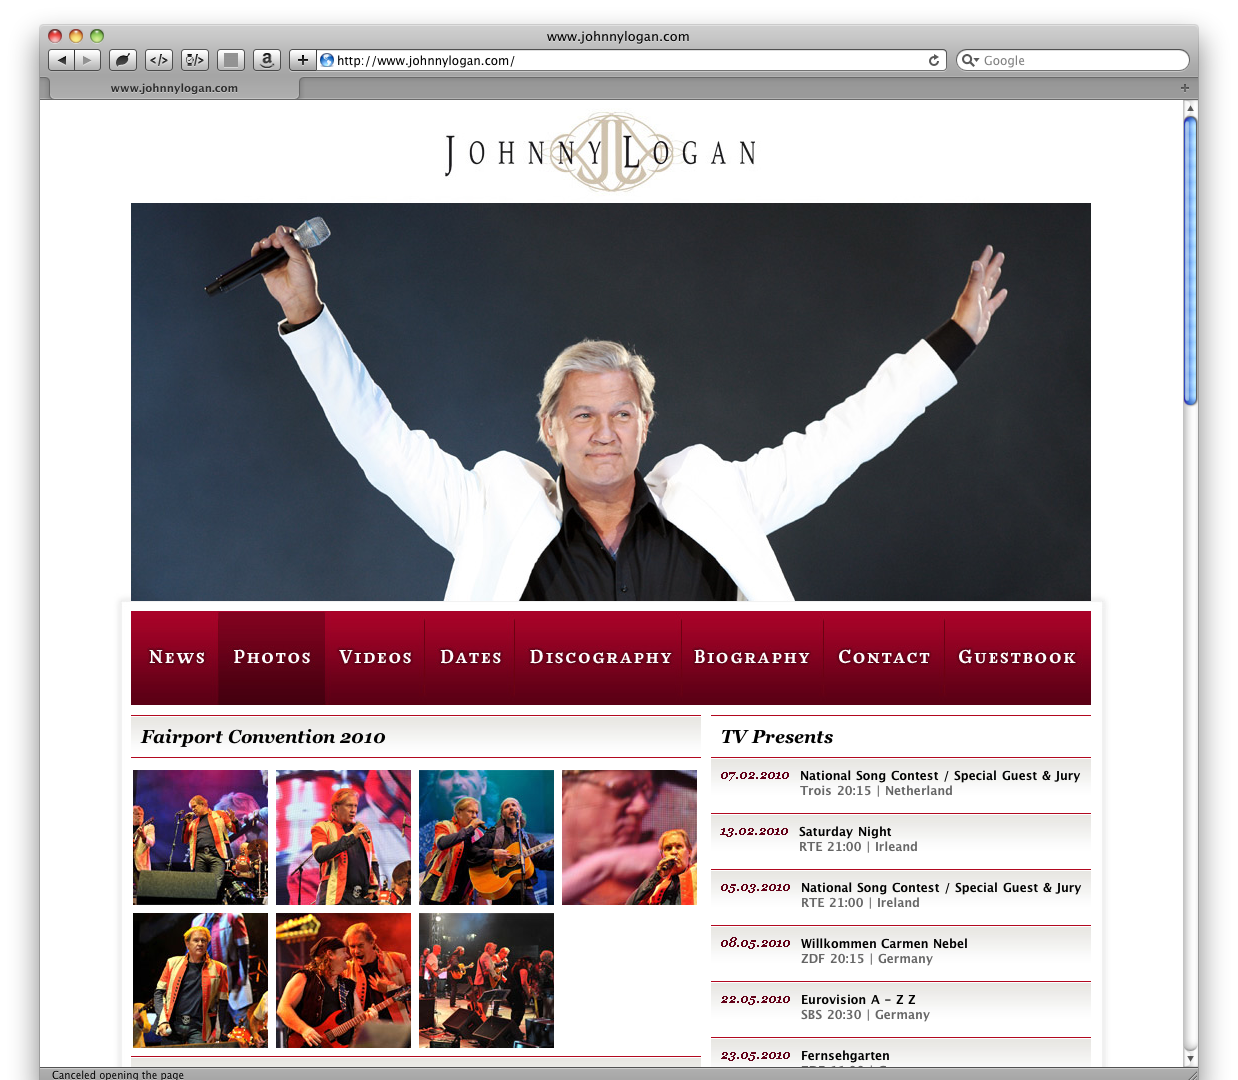 Johnny Logan - Official Website